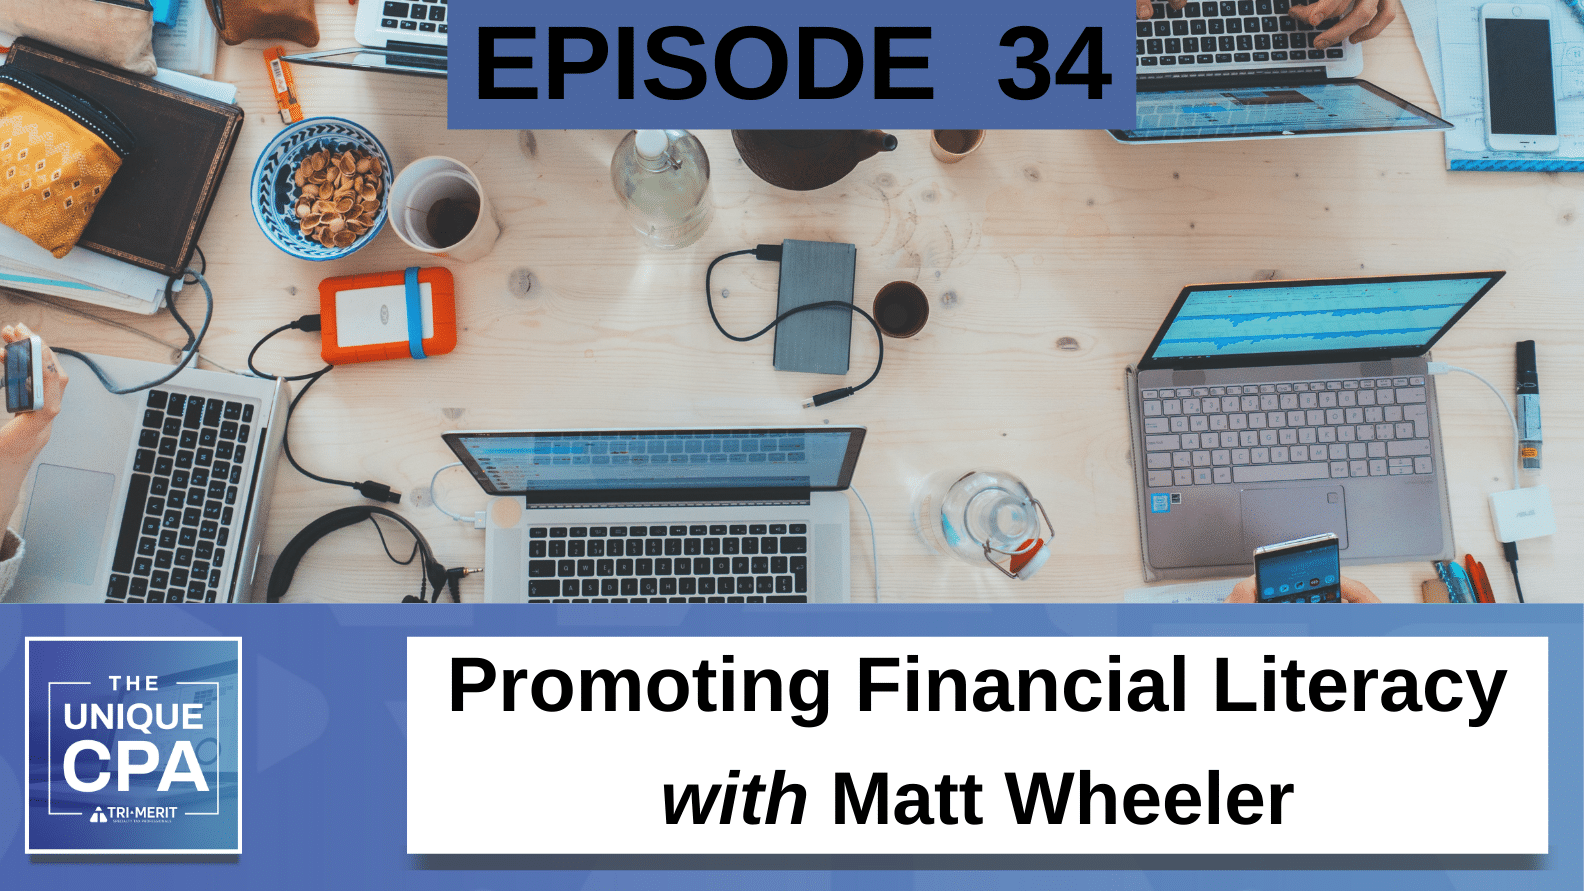 Unique CPA Featured Image Ep 34 Matt Wheeler - Promoting Financial Literacy - Tri-Merit